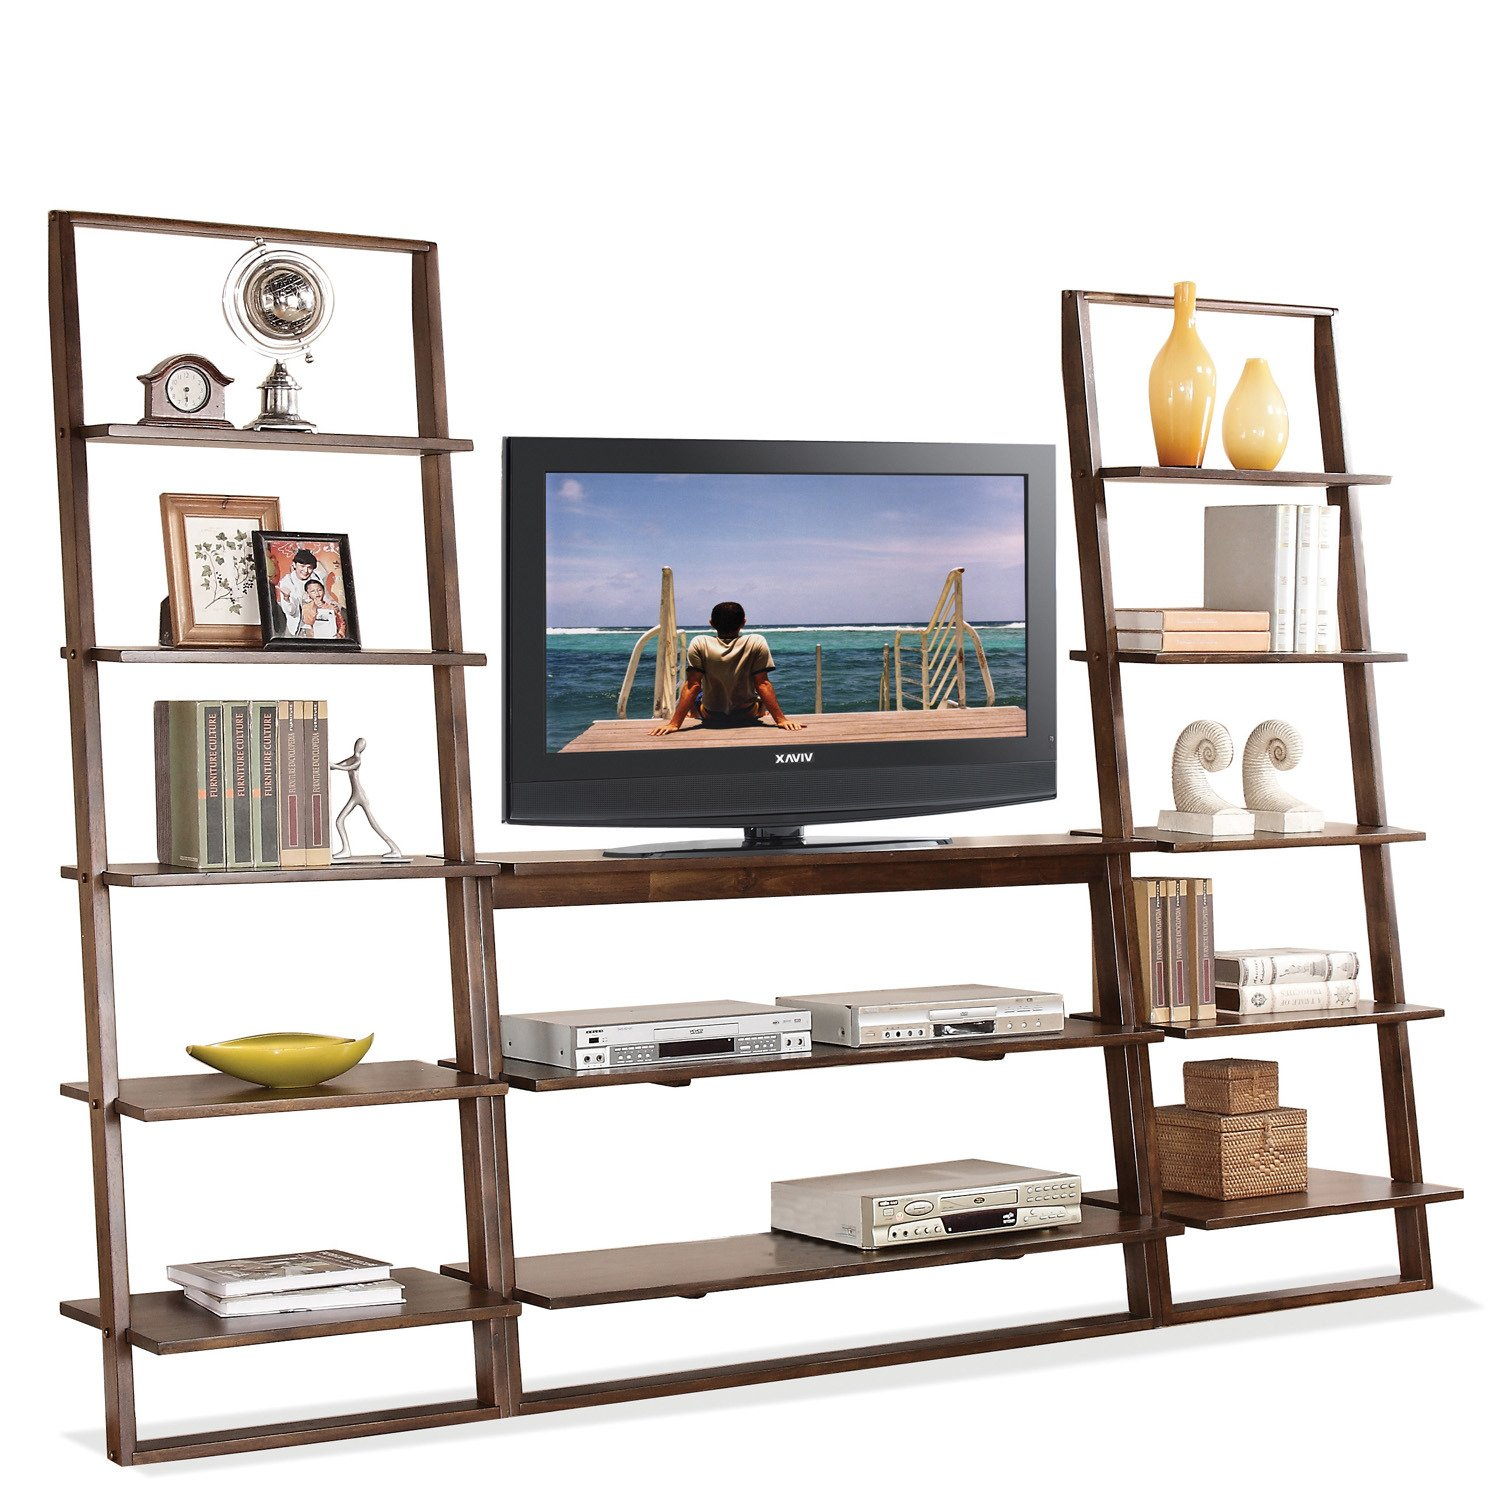 Awesome Amazon.com: Riverside Furniture Lean Living TV Stand In Burnished  Brownstone: Kitchen U0026 Dining